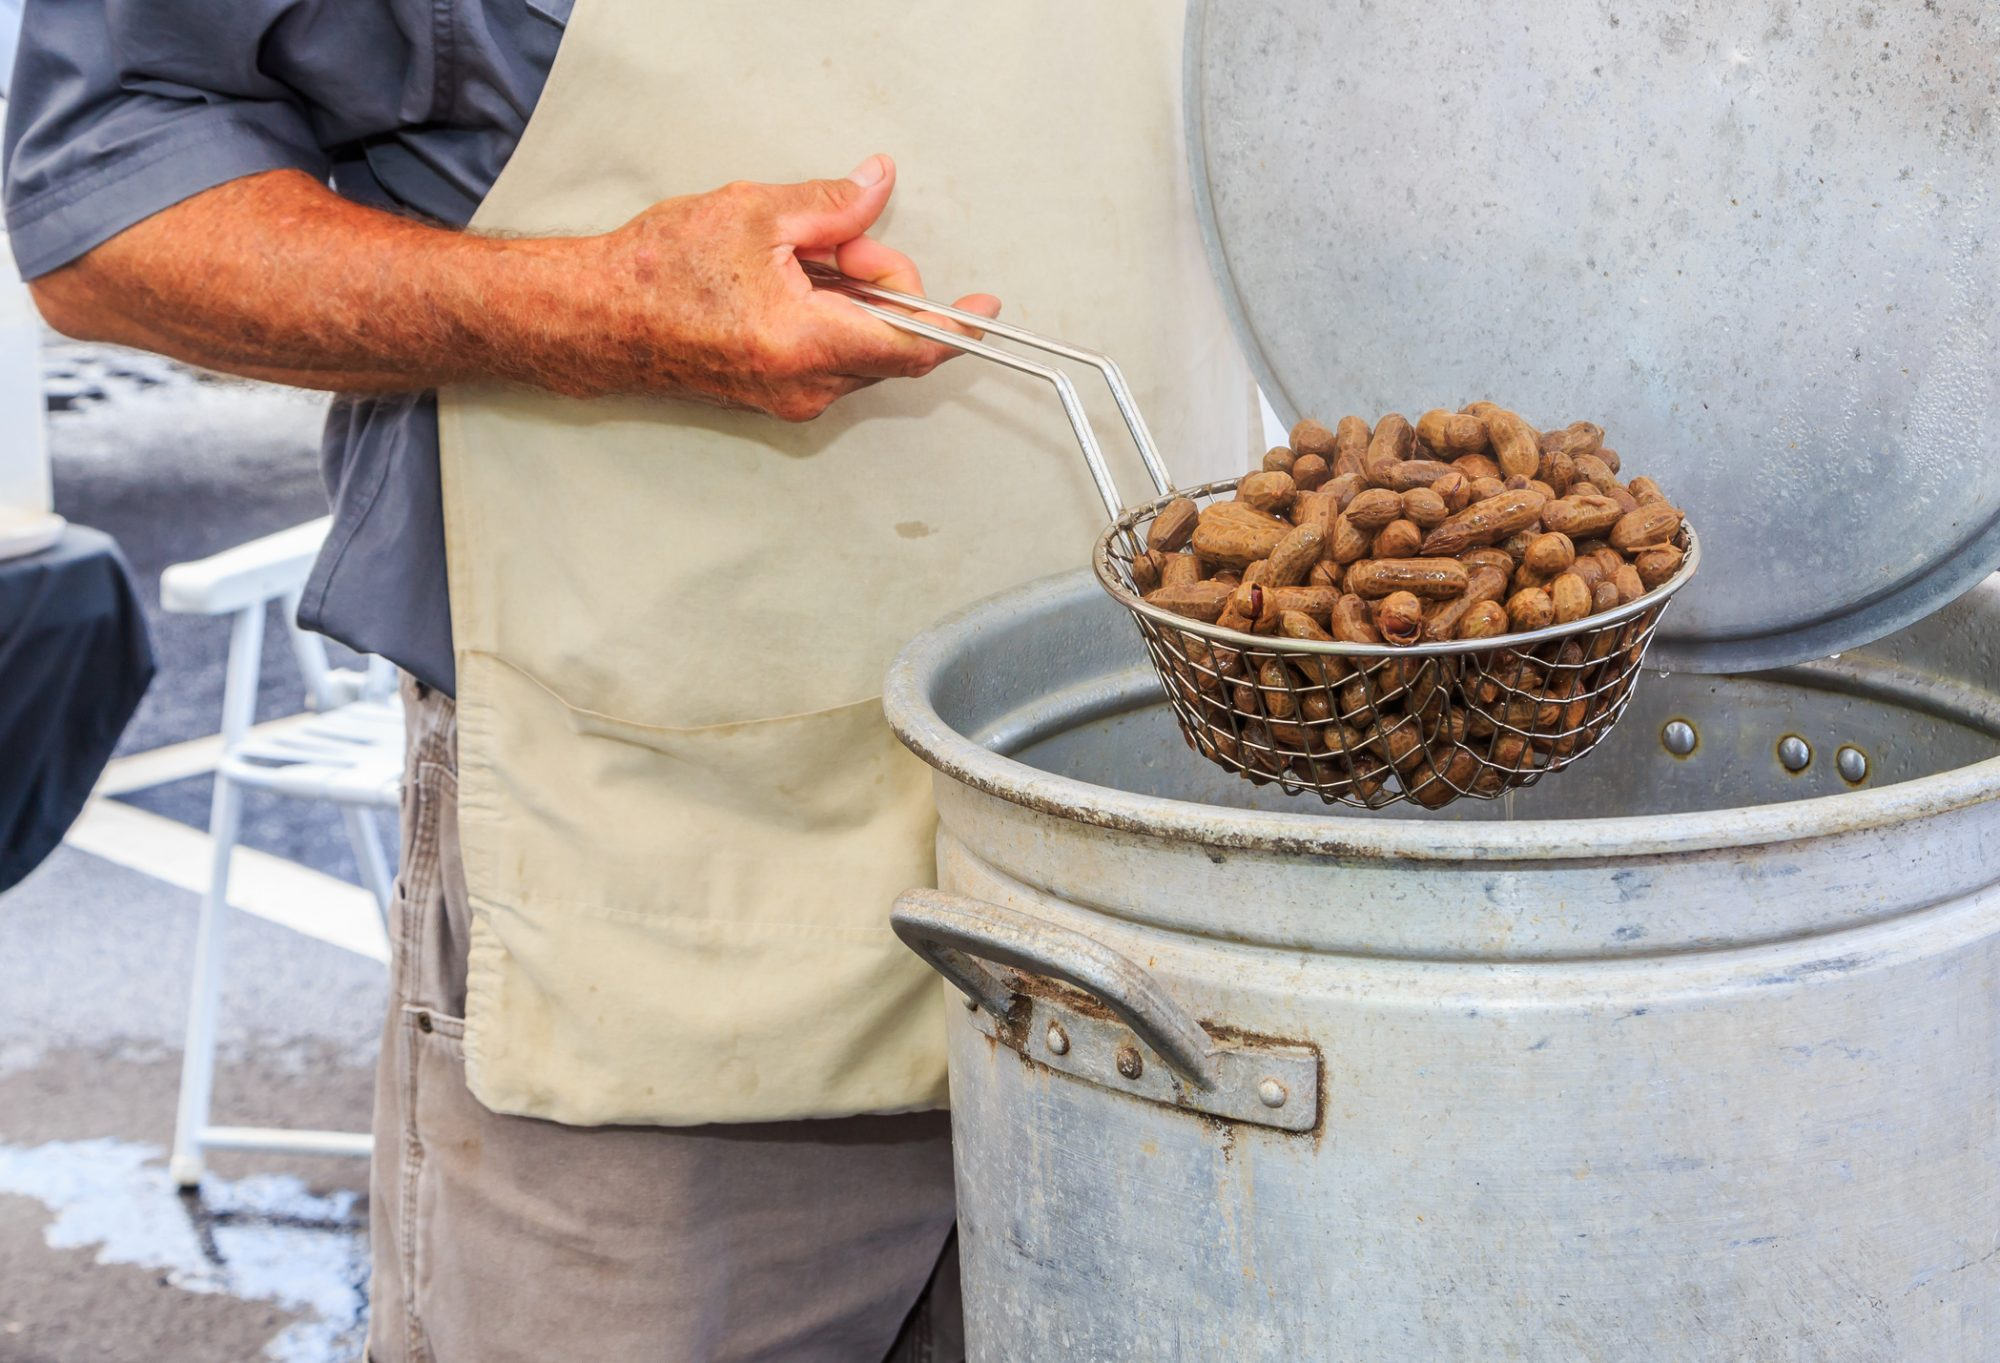 Fresh Boiled Peanuts at Farmers' Market